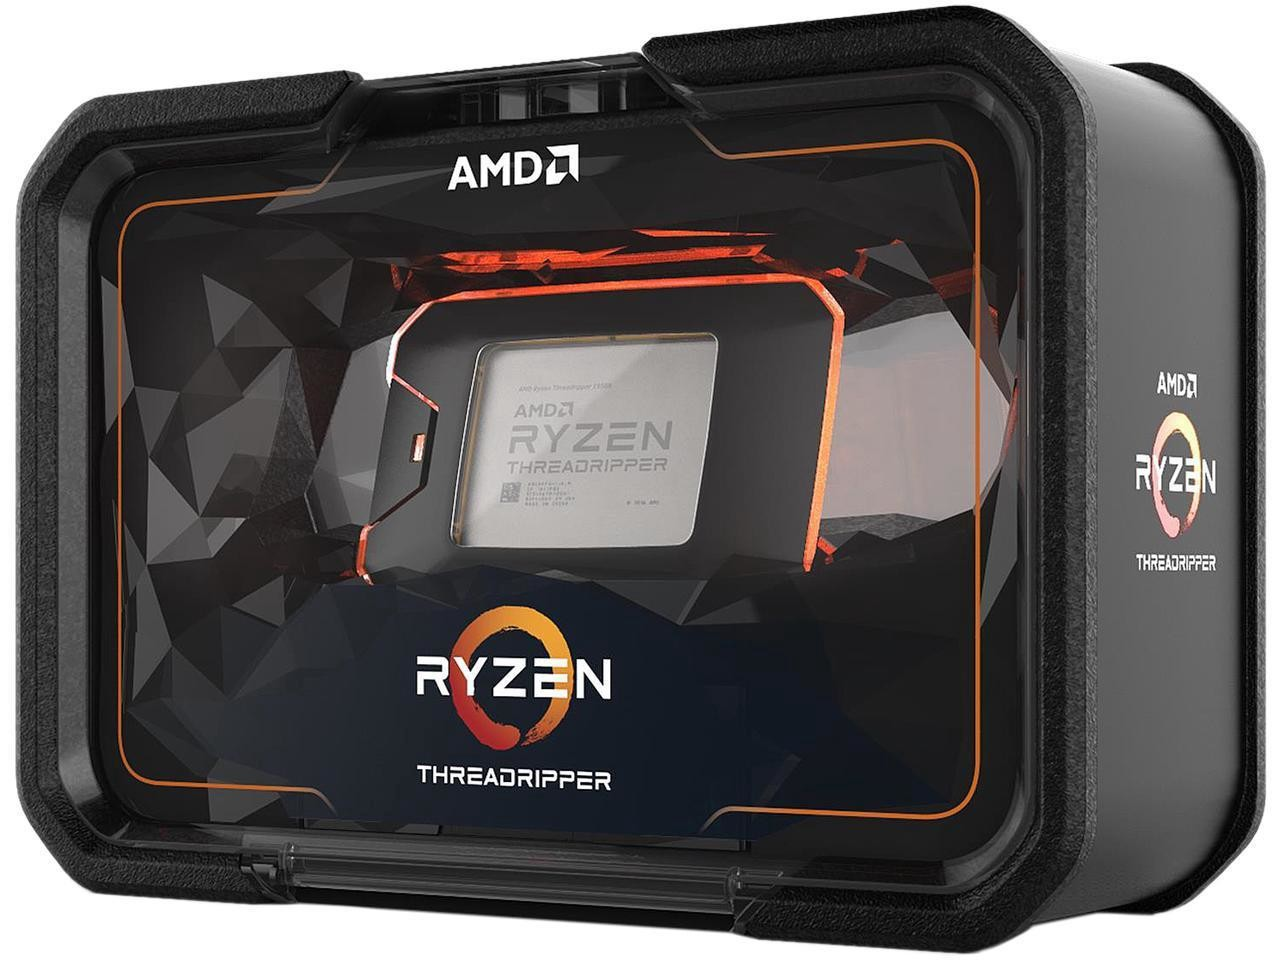 CPU AMD Ryzen Threadripper 2970WX Processor (24-Core, 48-Thread, 4.2 GHz Max Boost)